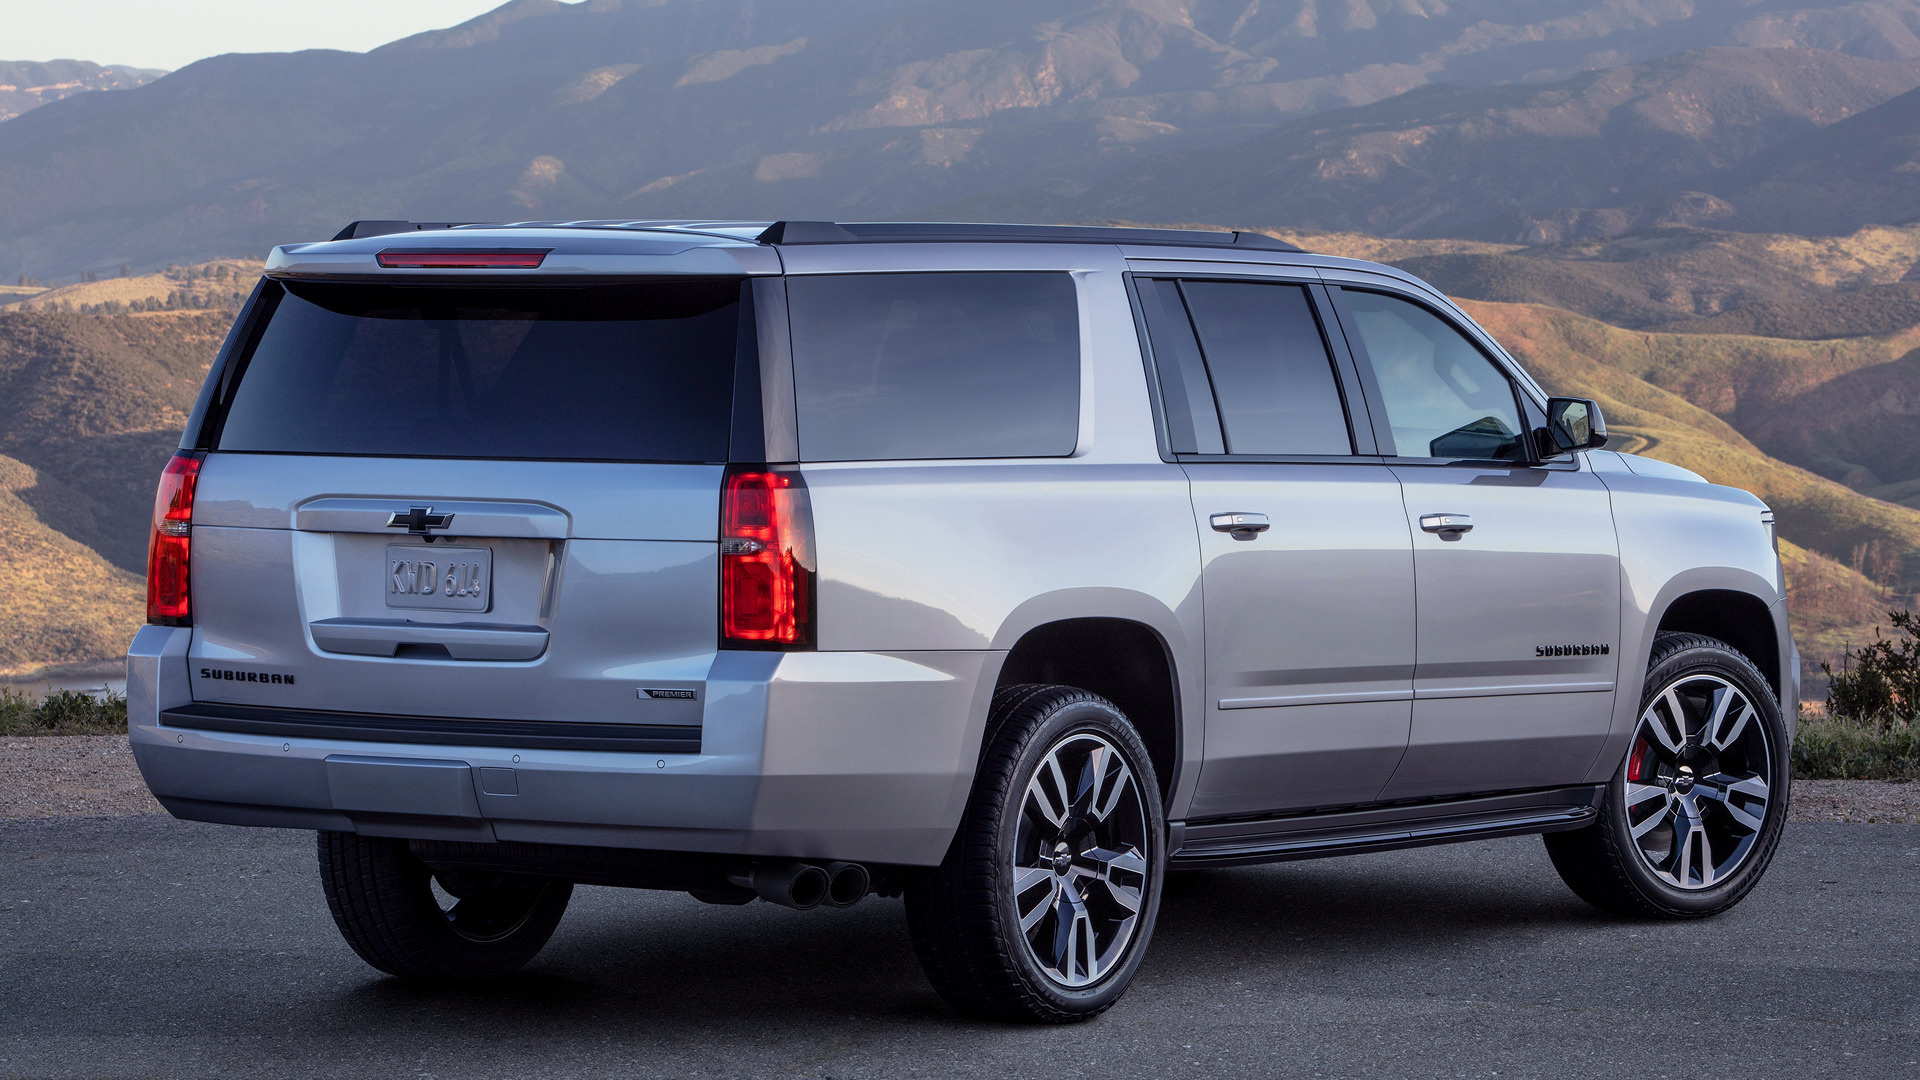 2018 Chevrolet Suburban Rst Performance Package